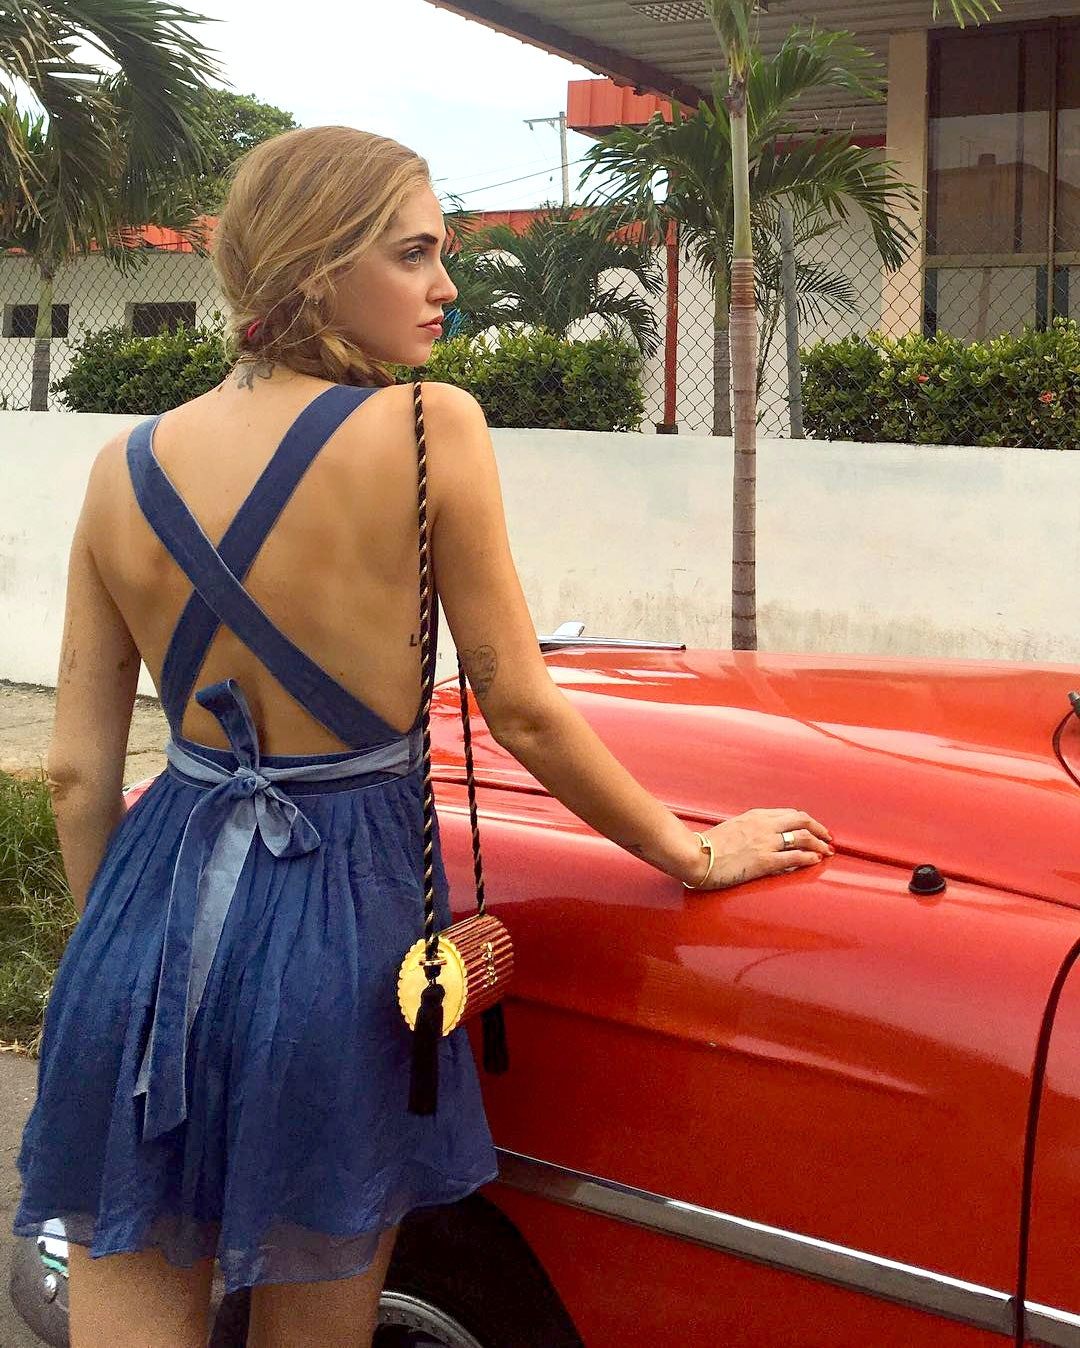 a46d1e13c01 3 Chic End-Of-Summer Outfits For Labor Day Weekend